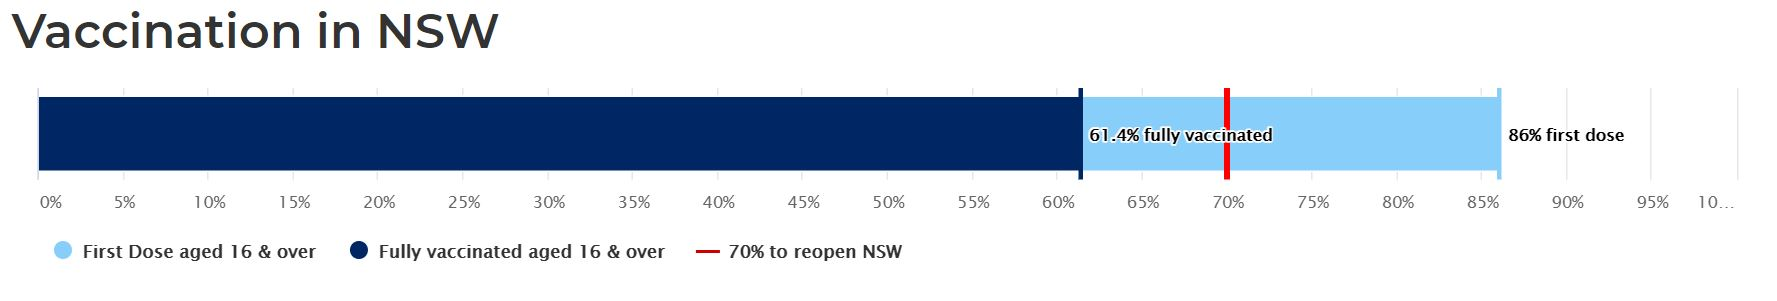 Vaccination Rate NSW Sept 2021